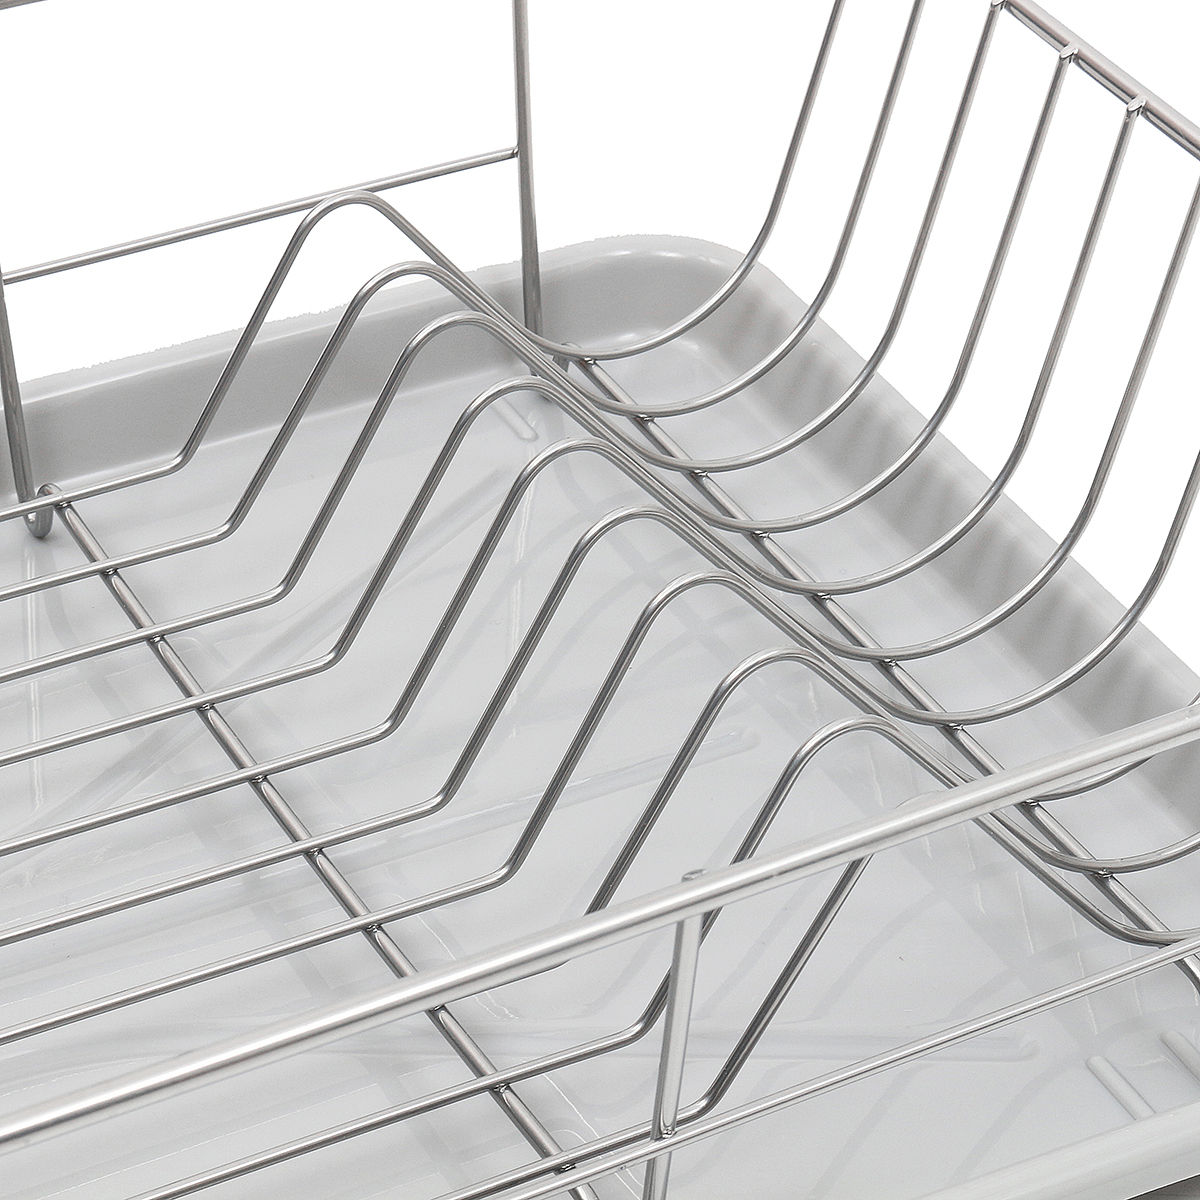 Stainless Steel Kitchen Dish Cup Plate Rack Utensil Holder Tray Drainer Drying Kitchen Storage Rack